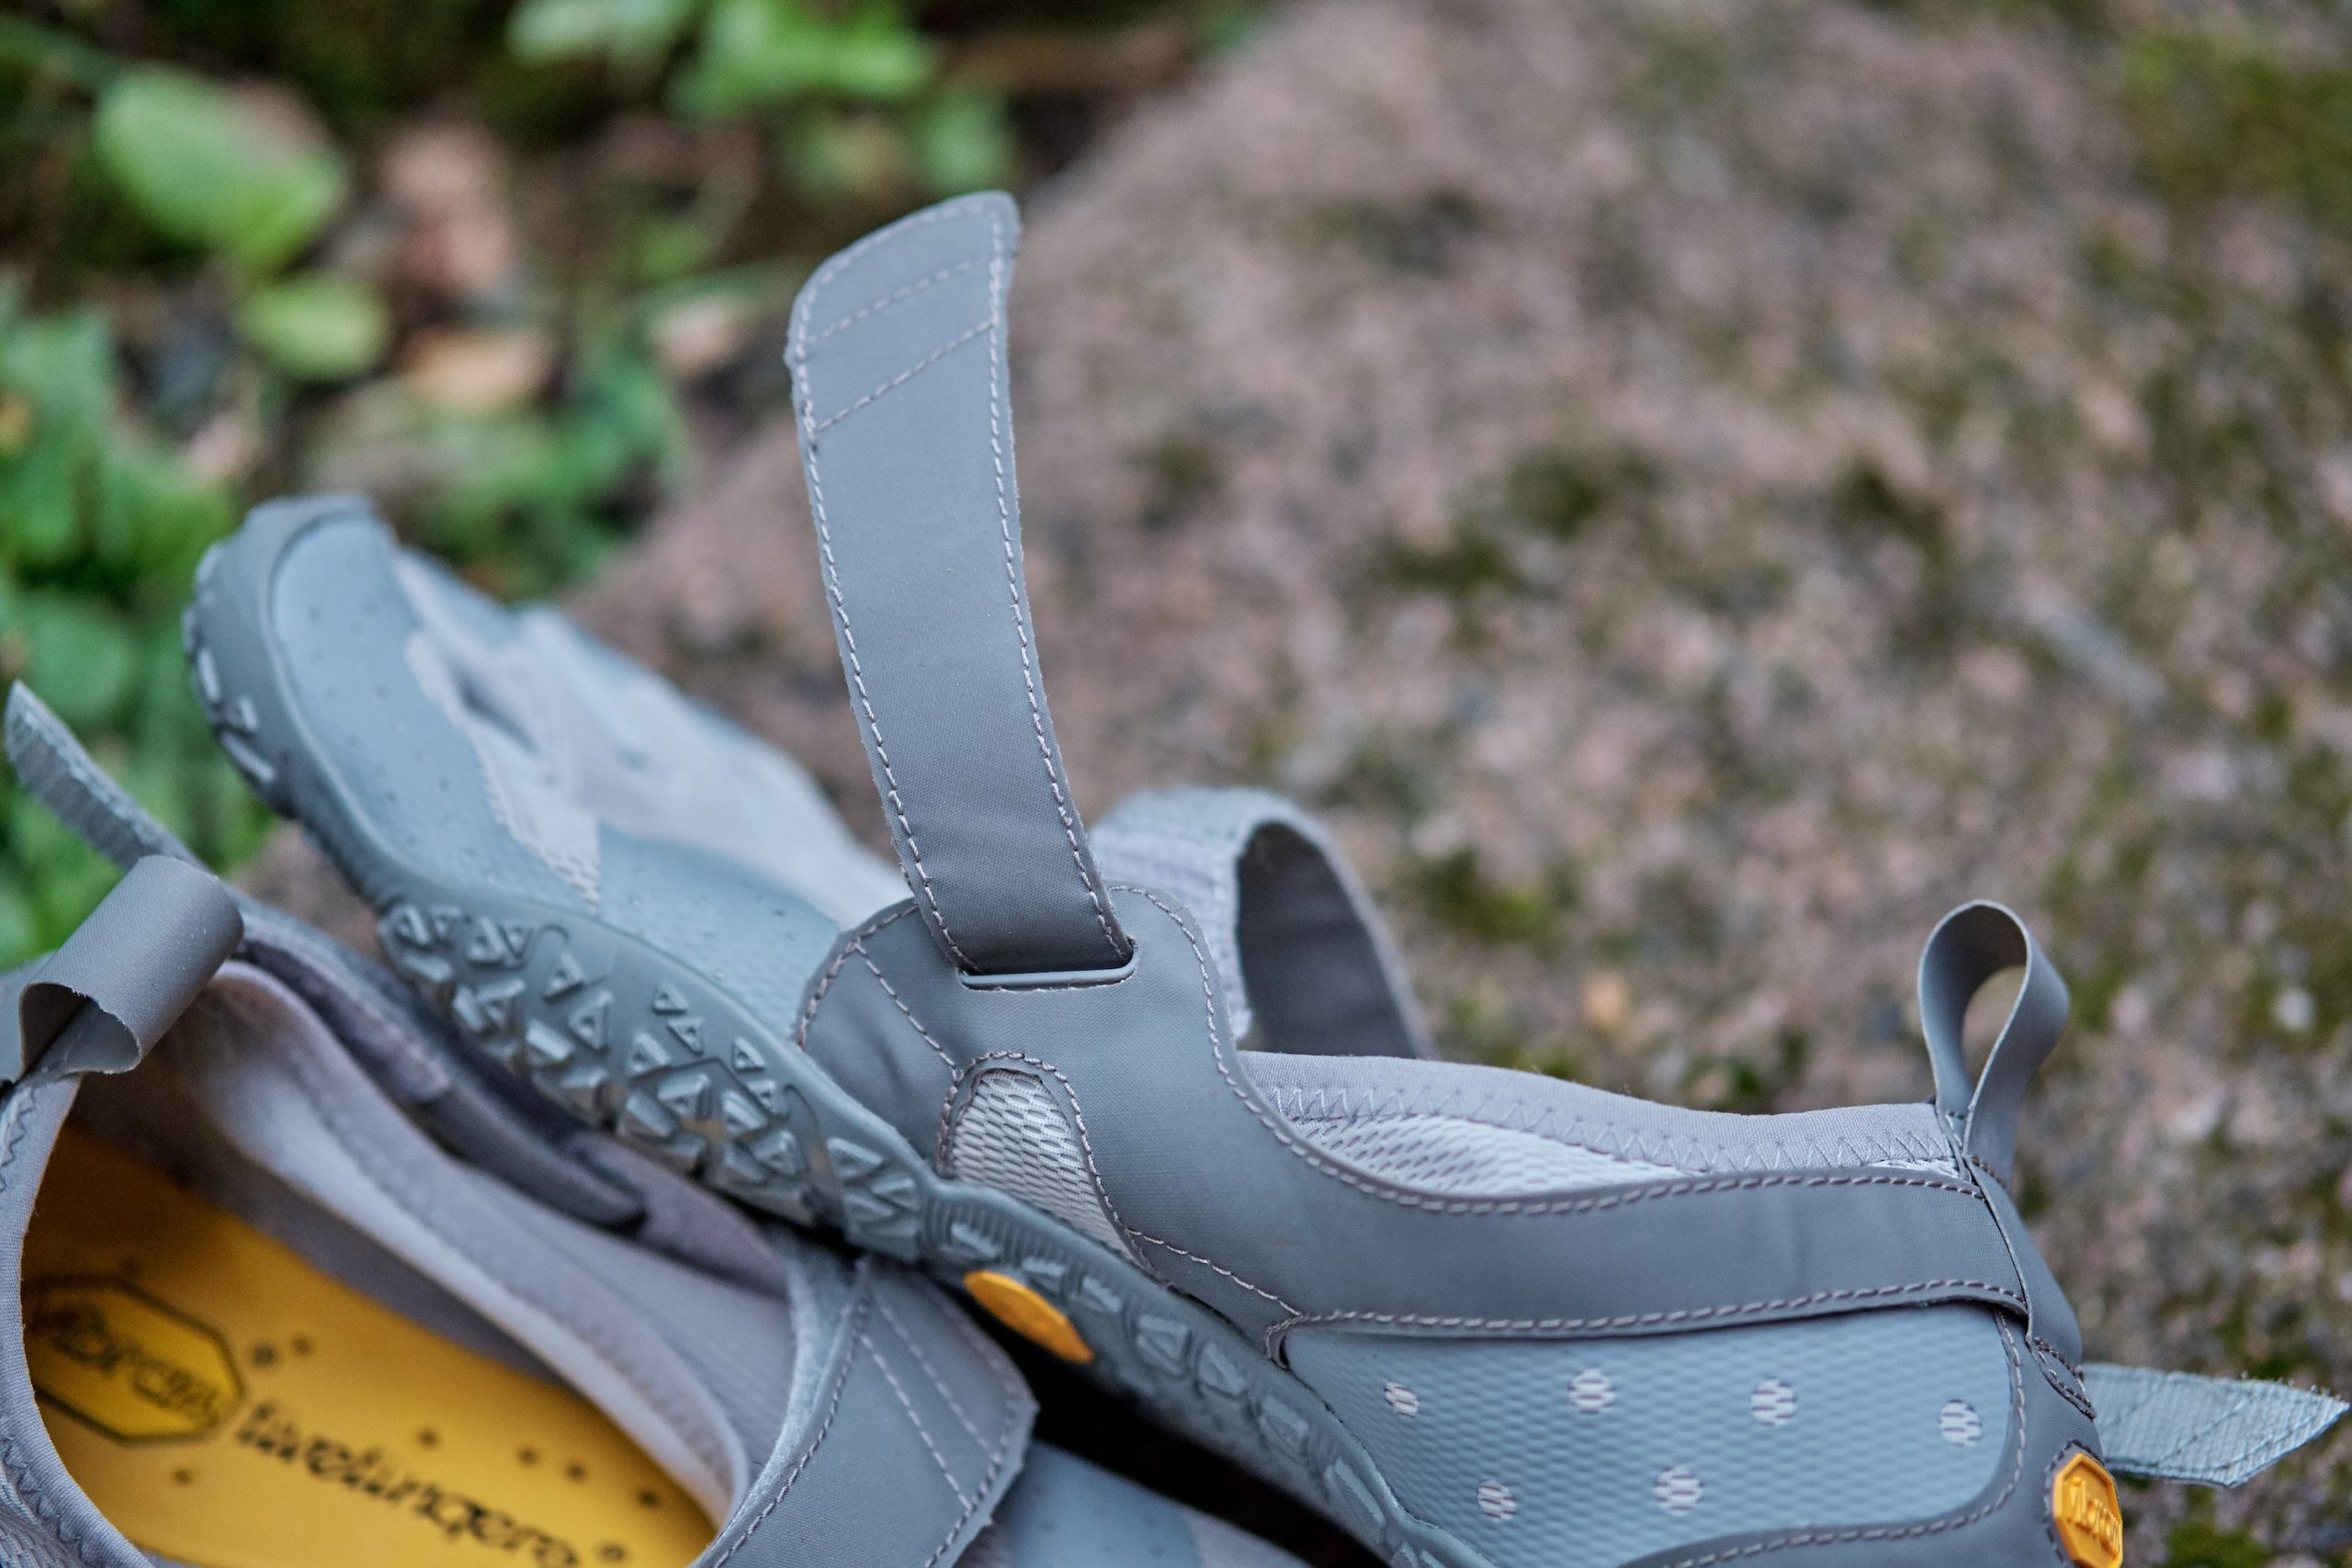 Velcro straps are love-it or hate-it. They may cause some irritation with higher-volume feet